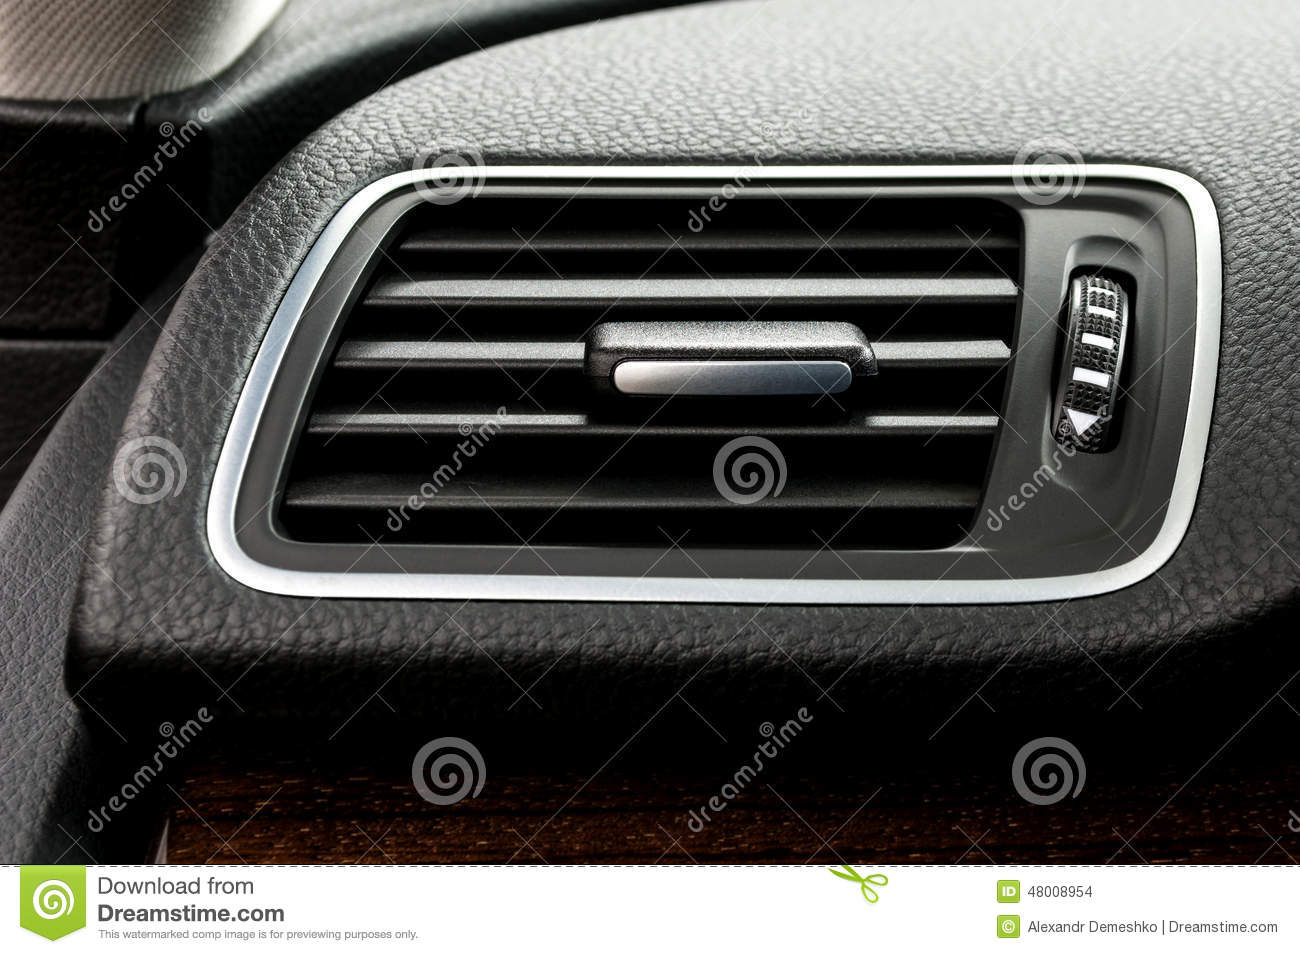 car air conditioning system stock photo image of automobile panel 48008954. Black Bedroom Furniture Sets. Home Design Ideas